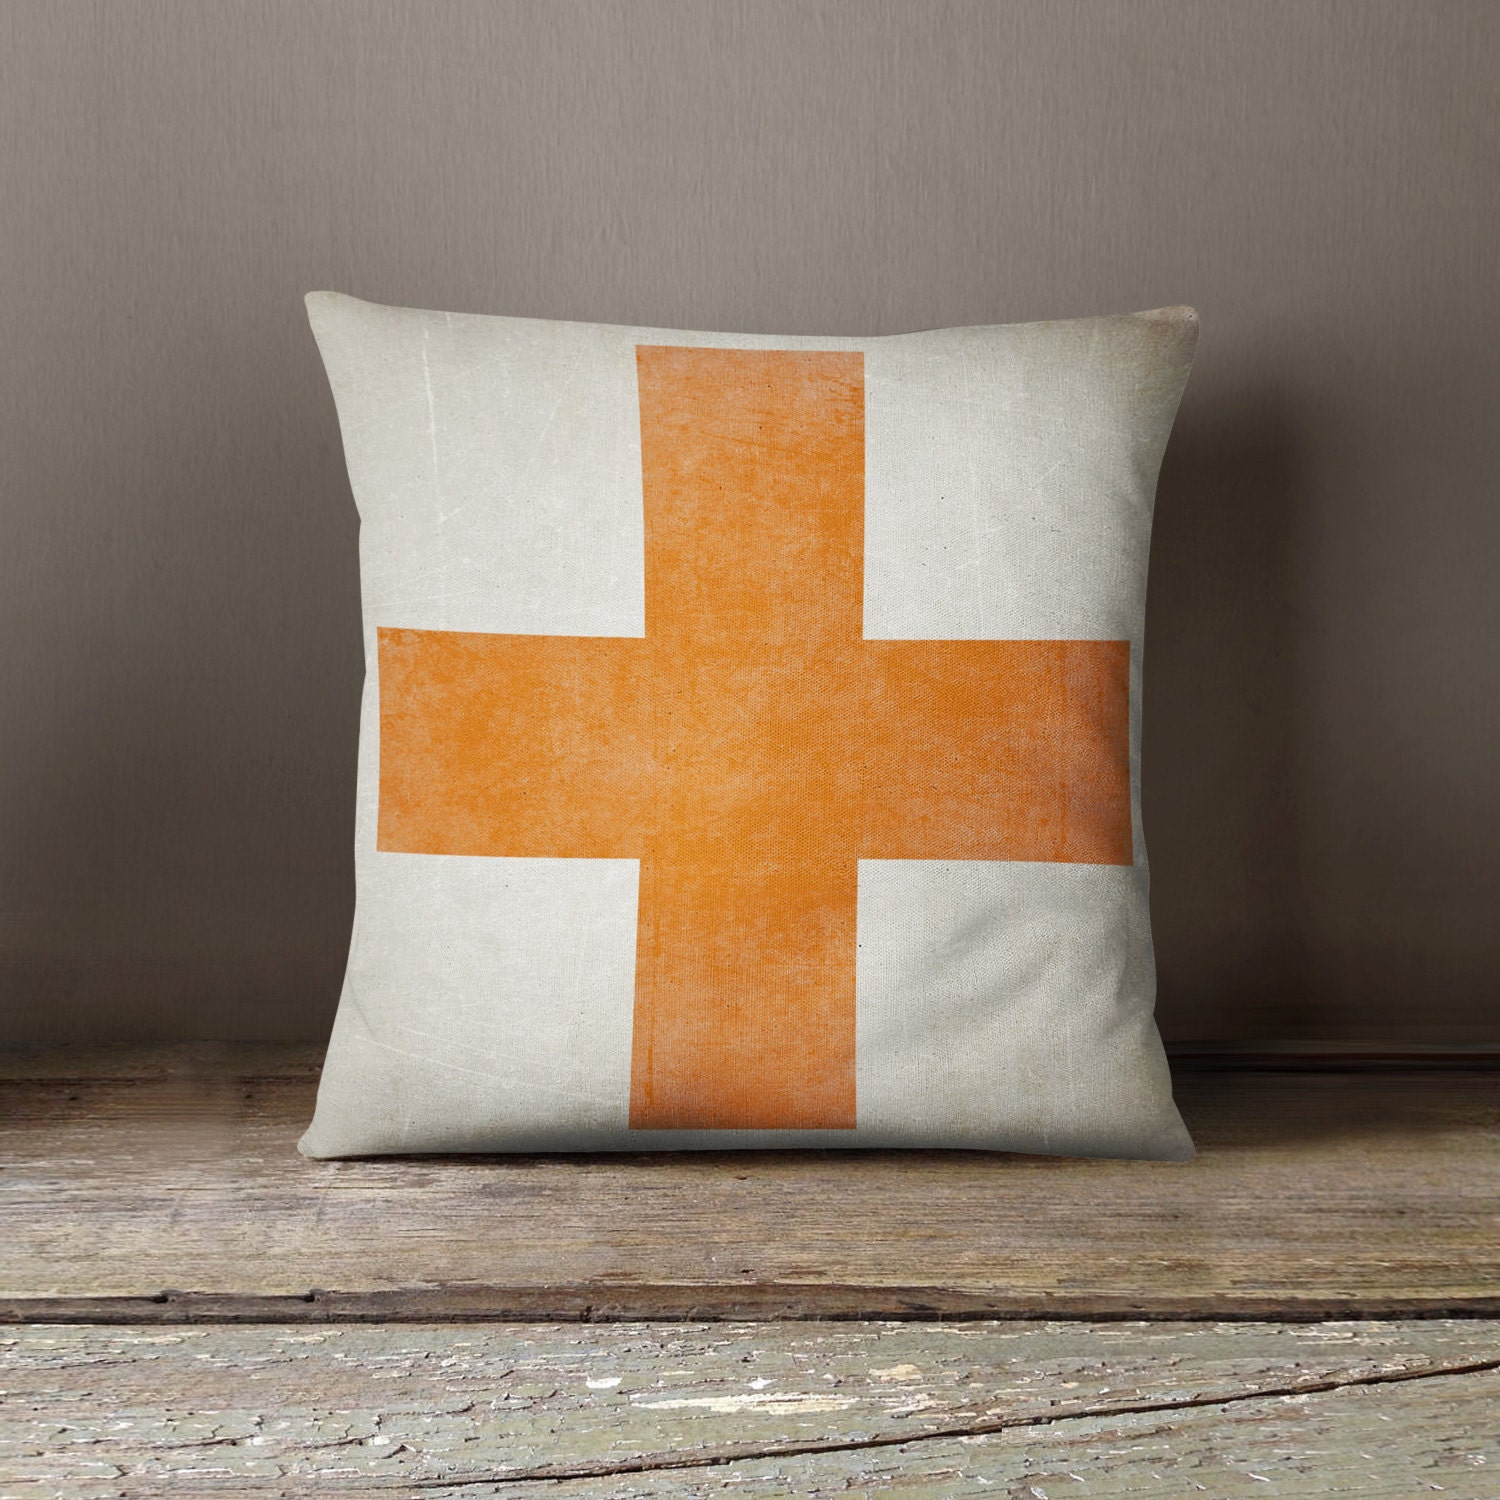 Decorative Pillows With Crosses : Swiss Cross Pillow Living Room Decor Pillow Cover Orange